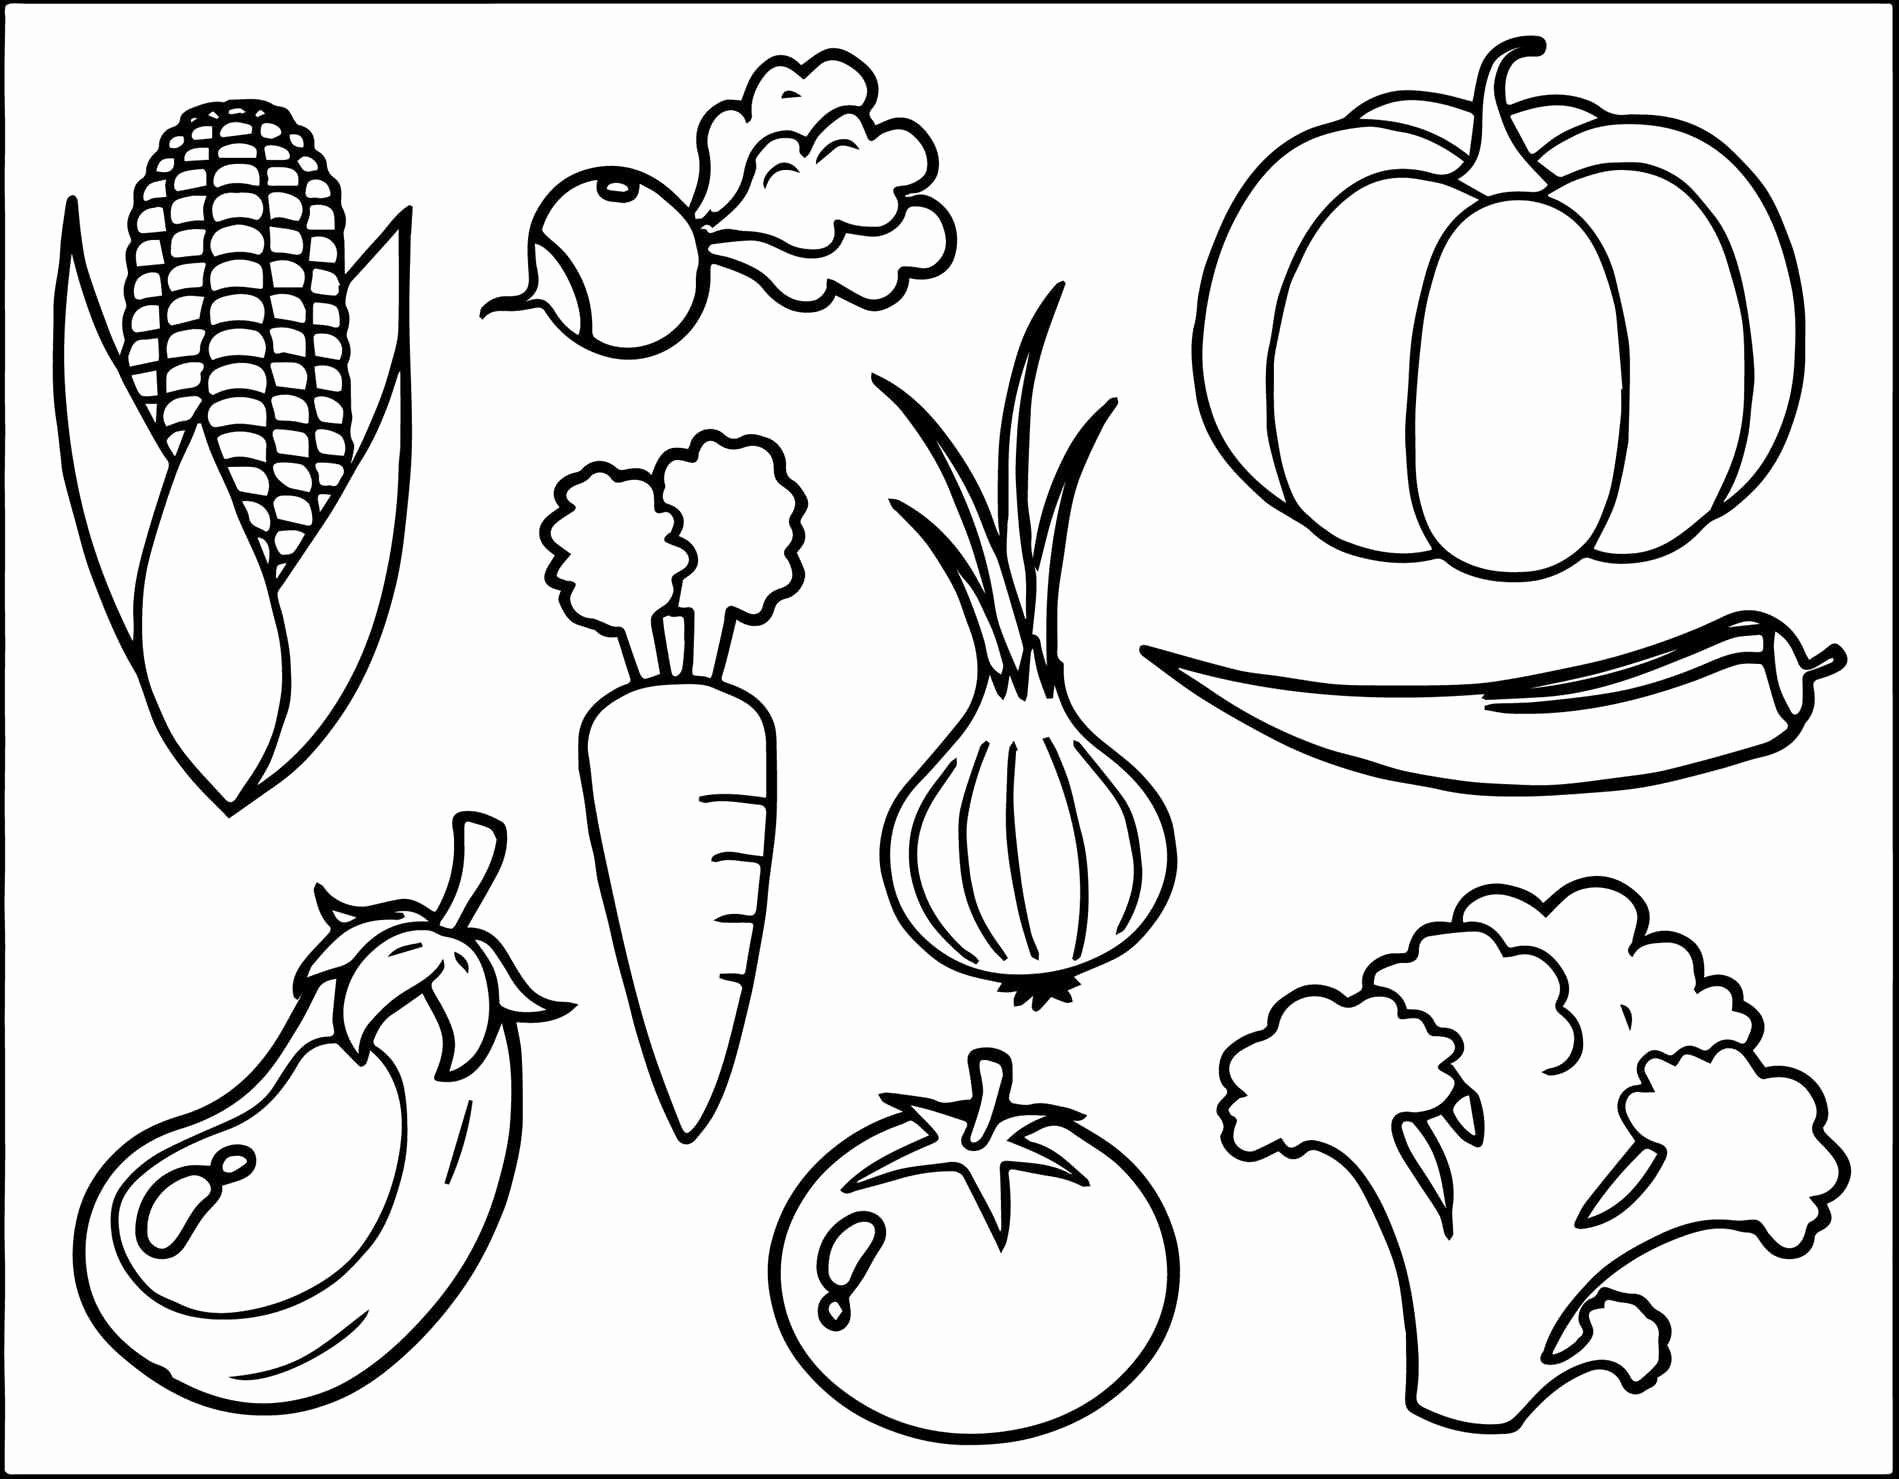 Fruits and Vegetable Coloring Books Pdf for Kids- Inspirational